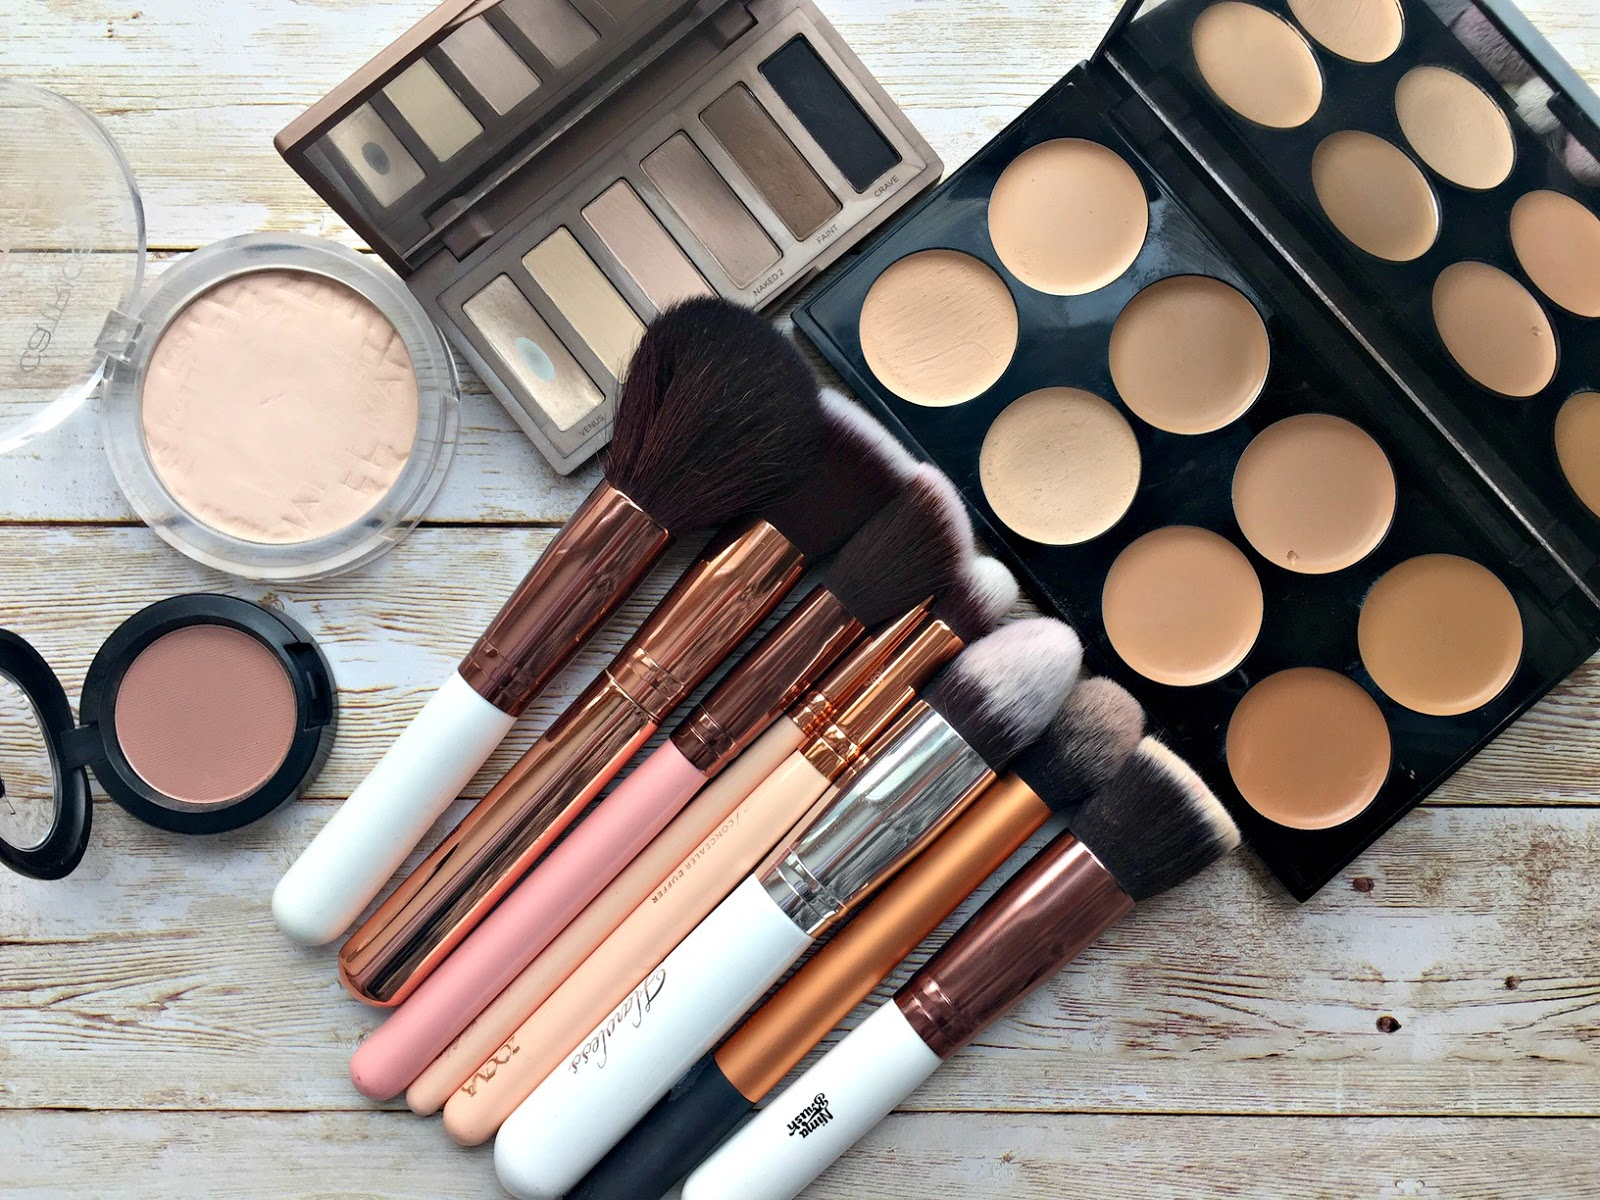 Makeup brush musthaves